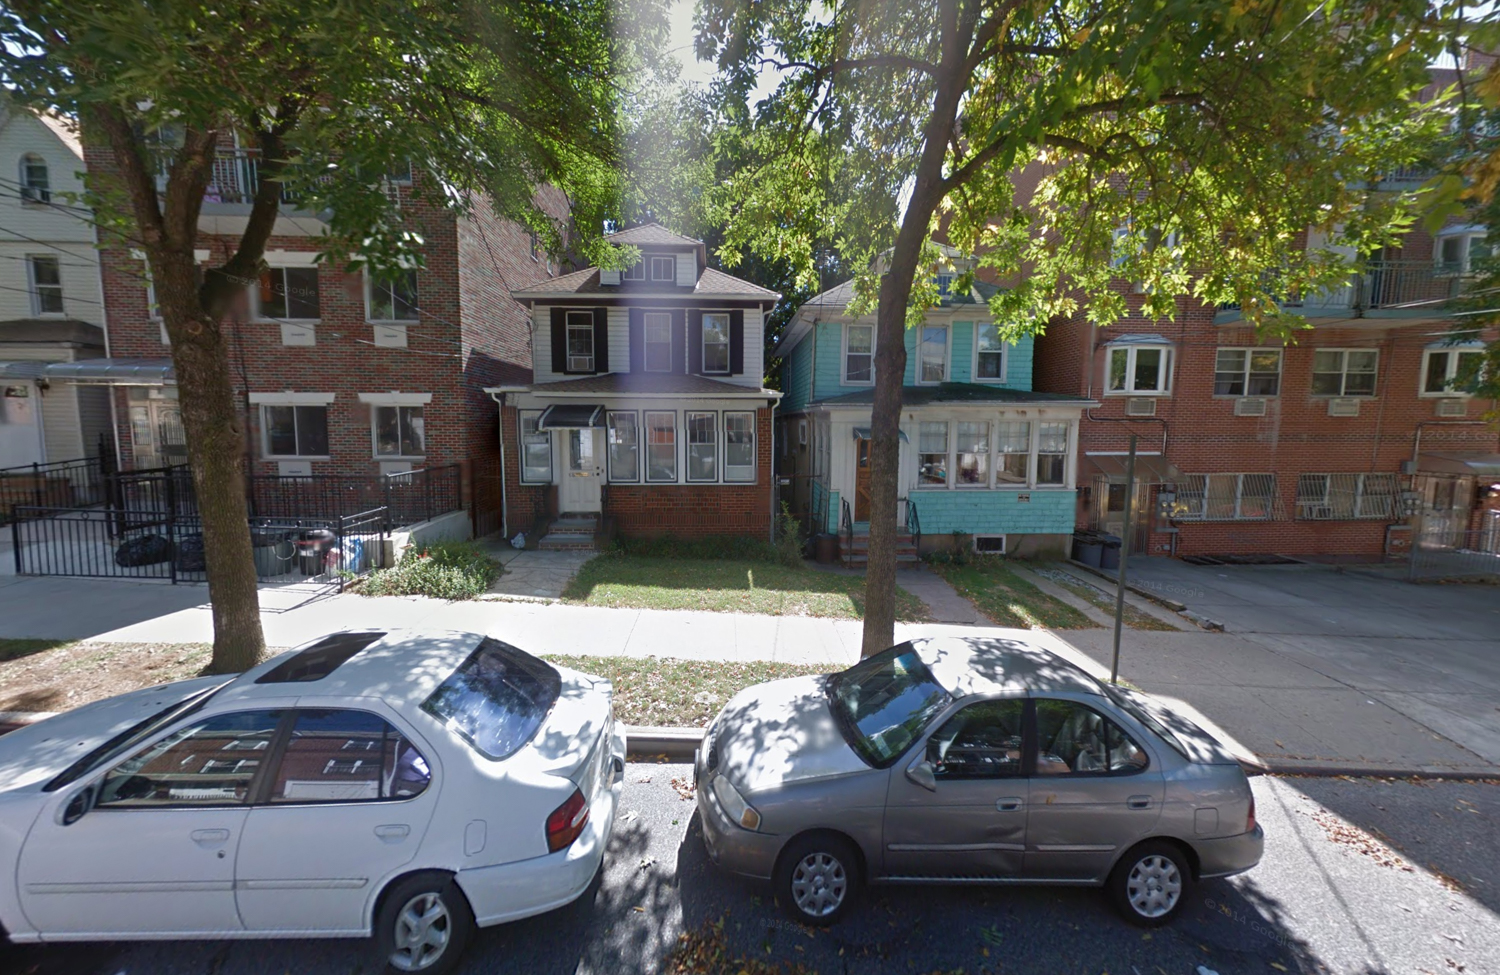 88-30 and 88-34 54th Avenue, via Google Maps